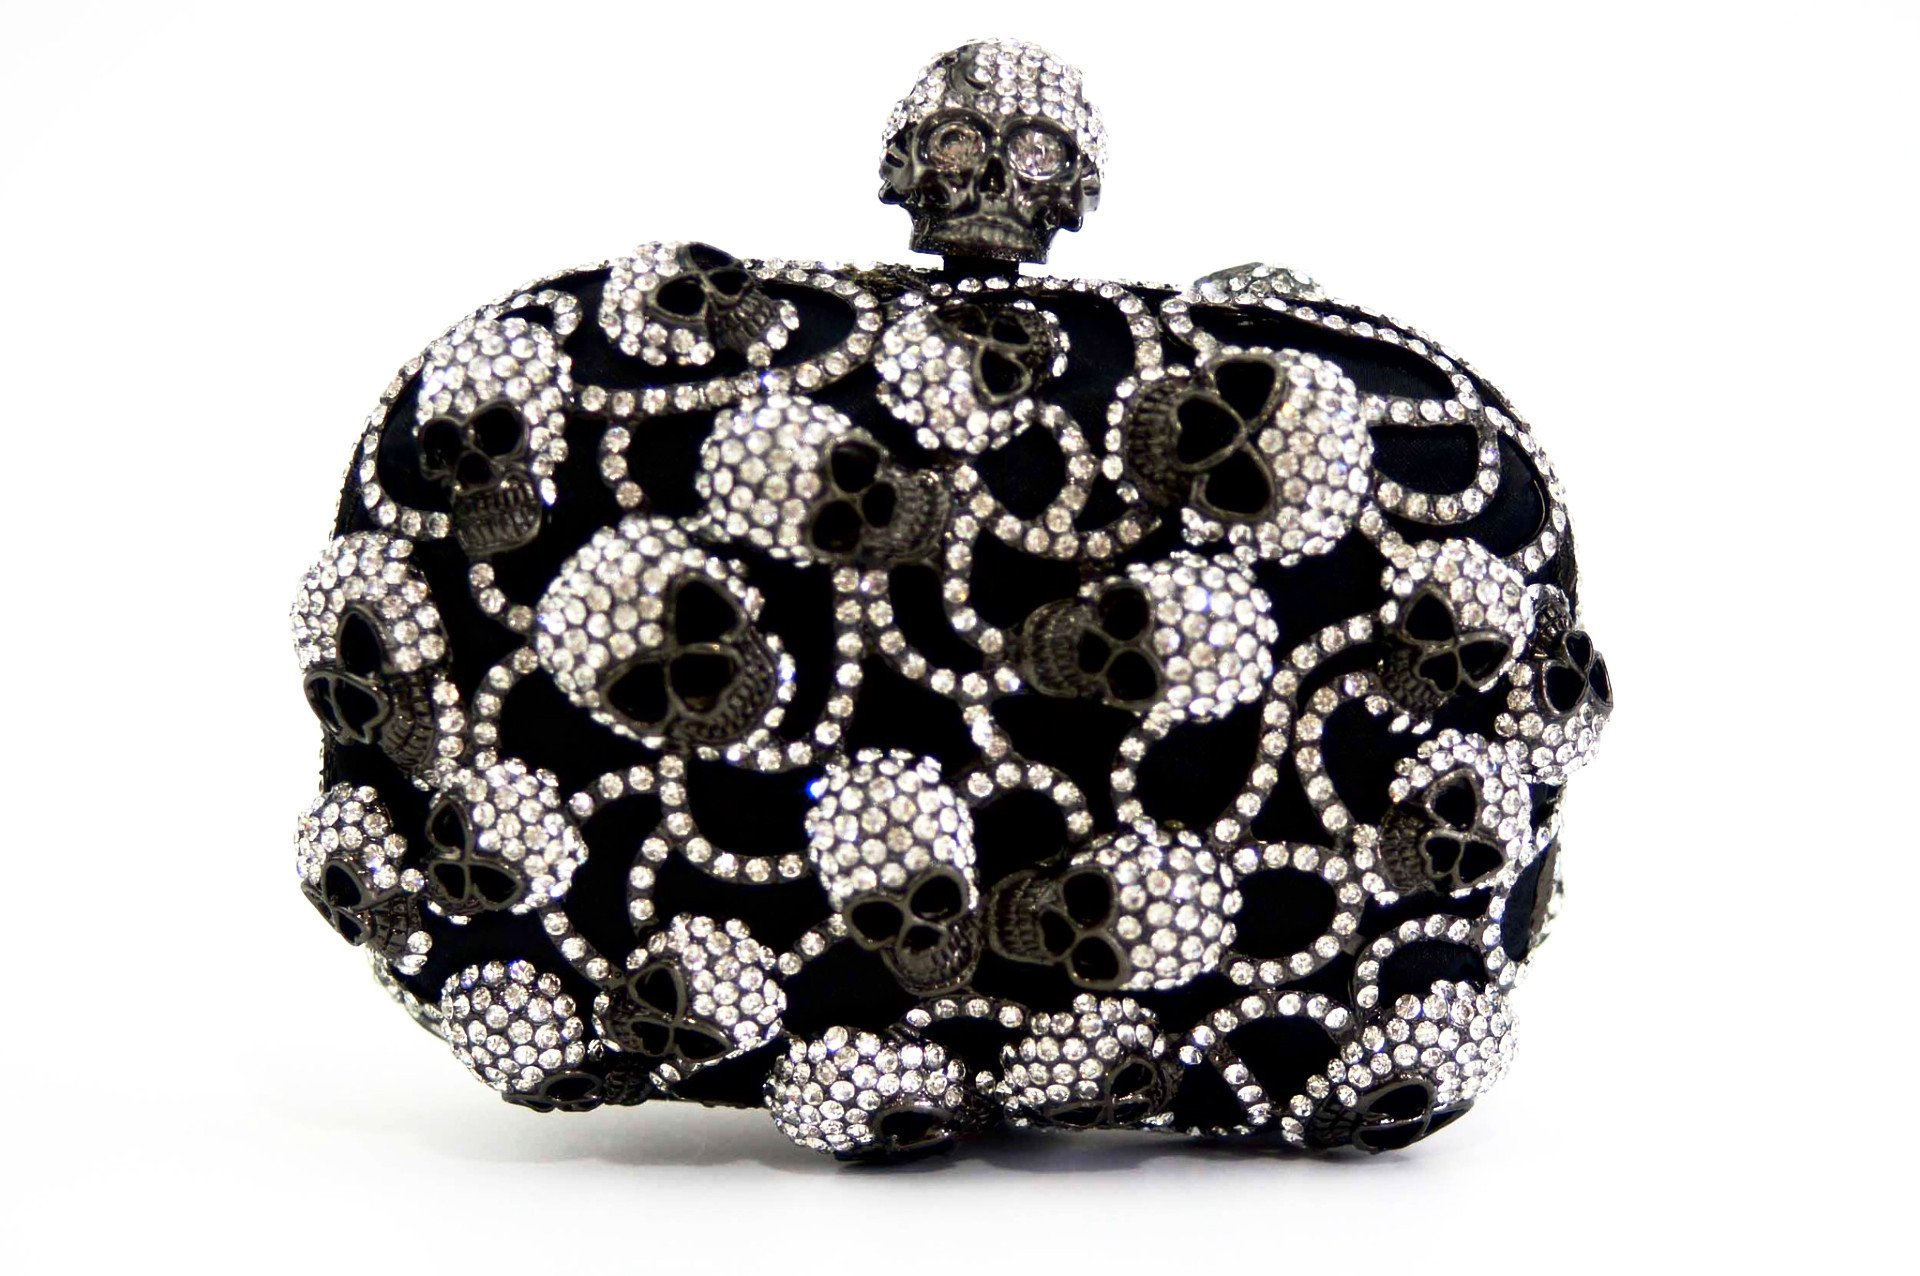 06dfc61b67 Luxury Rhinestone Encrusted Skull Evening from MILANBLOCKS